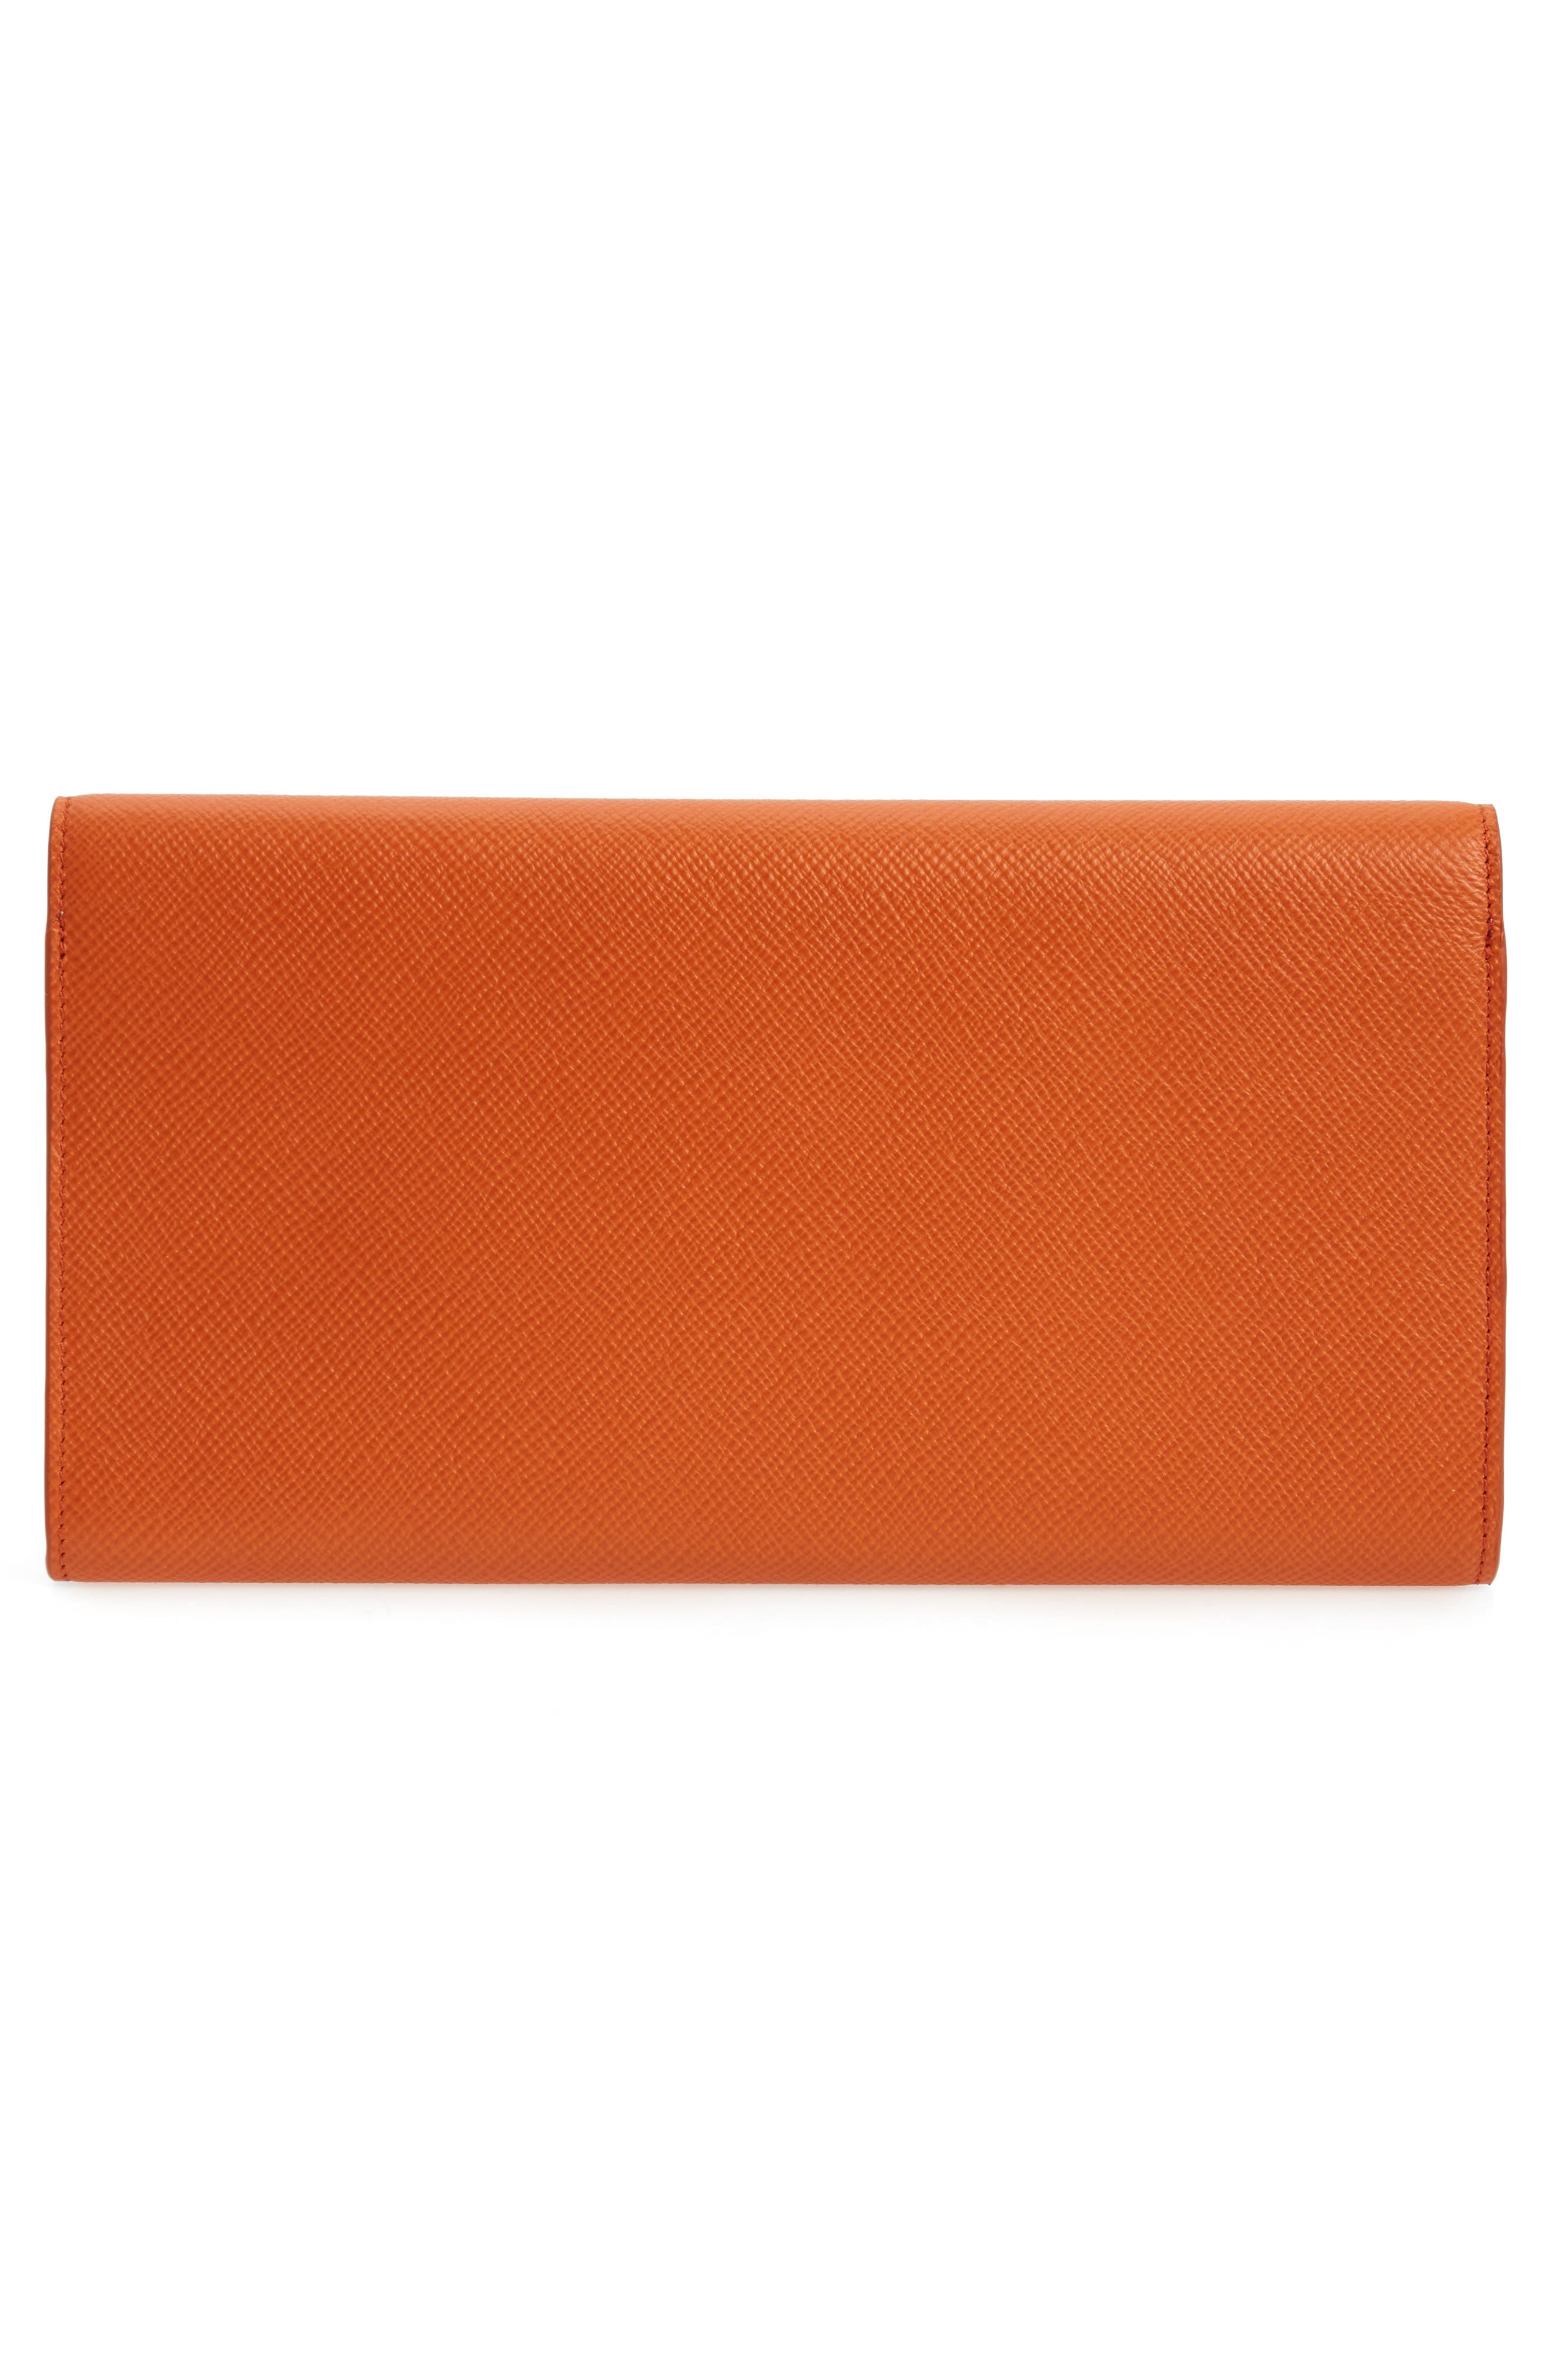 Panama Marshall Calfskin Leather Travel Wallet,                             Alternate thumbnail 3, color,                             800